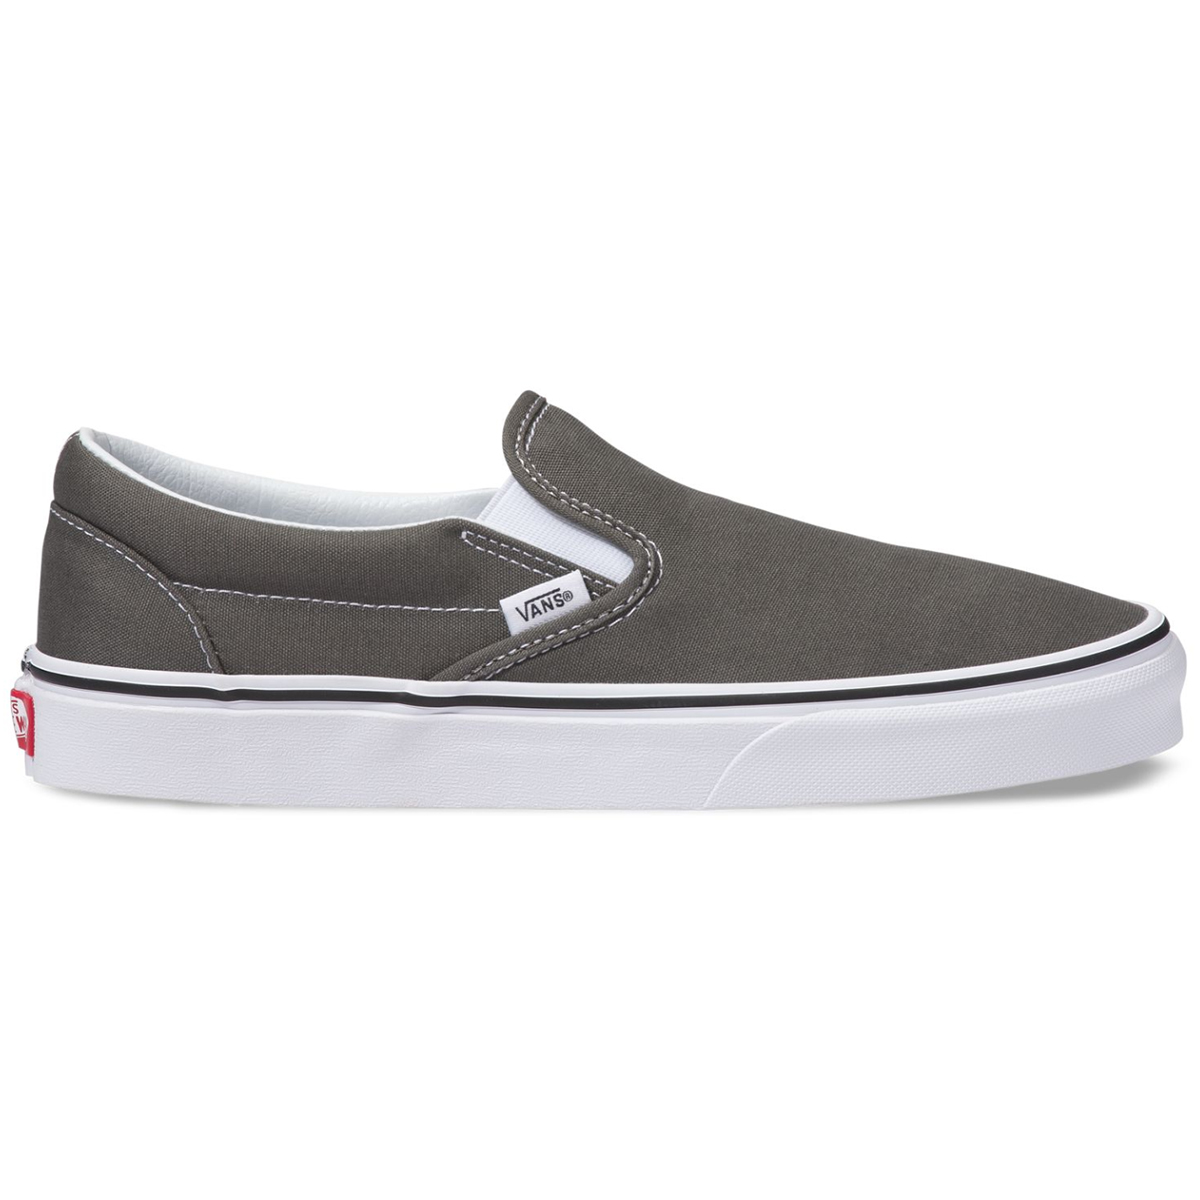 Vans Unisex Classic Slip-On Shoes - Black, 11.5